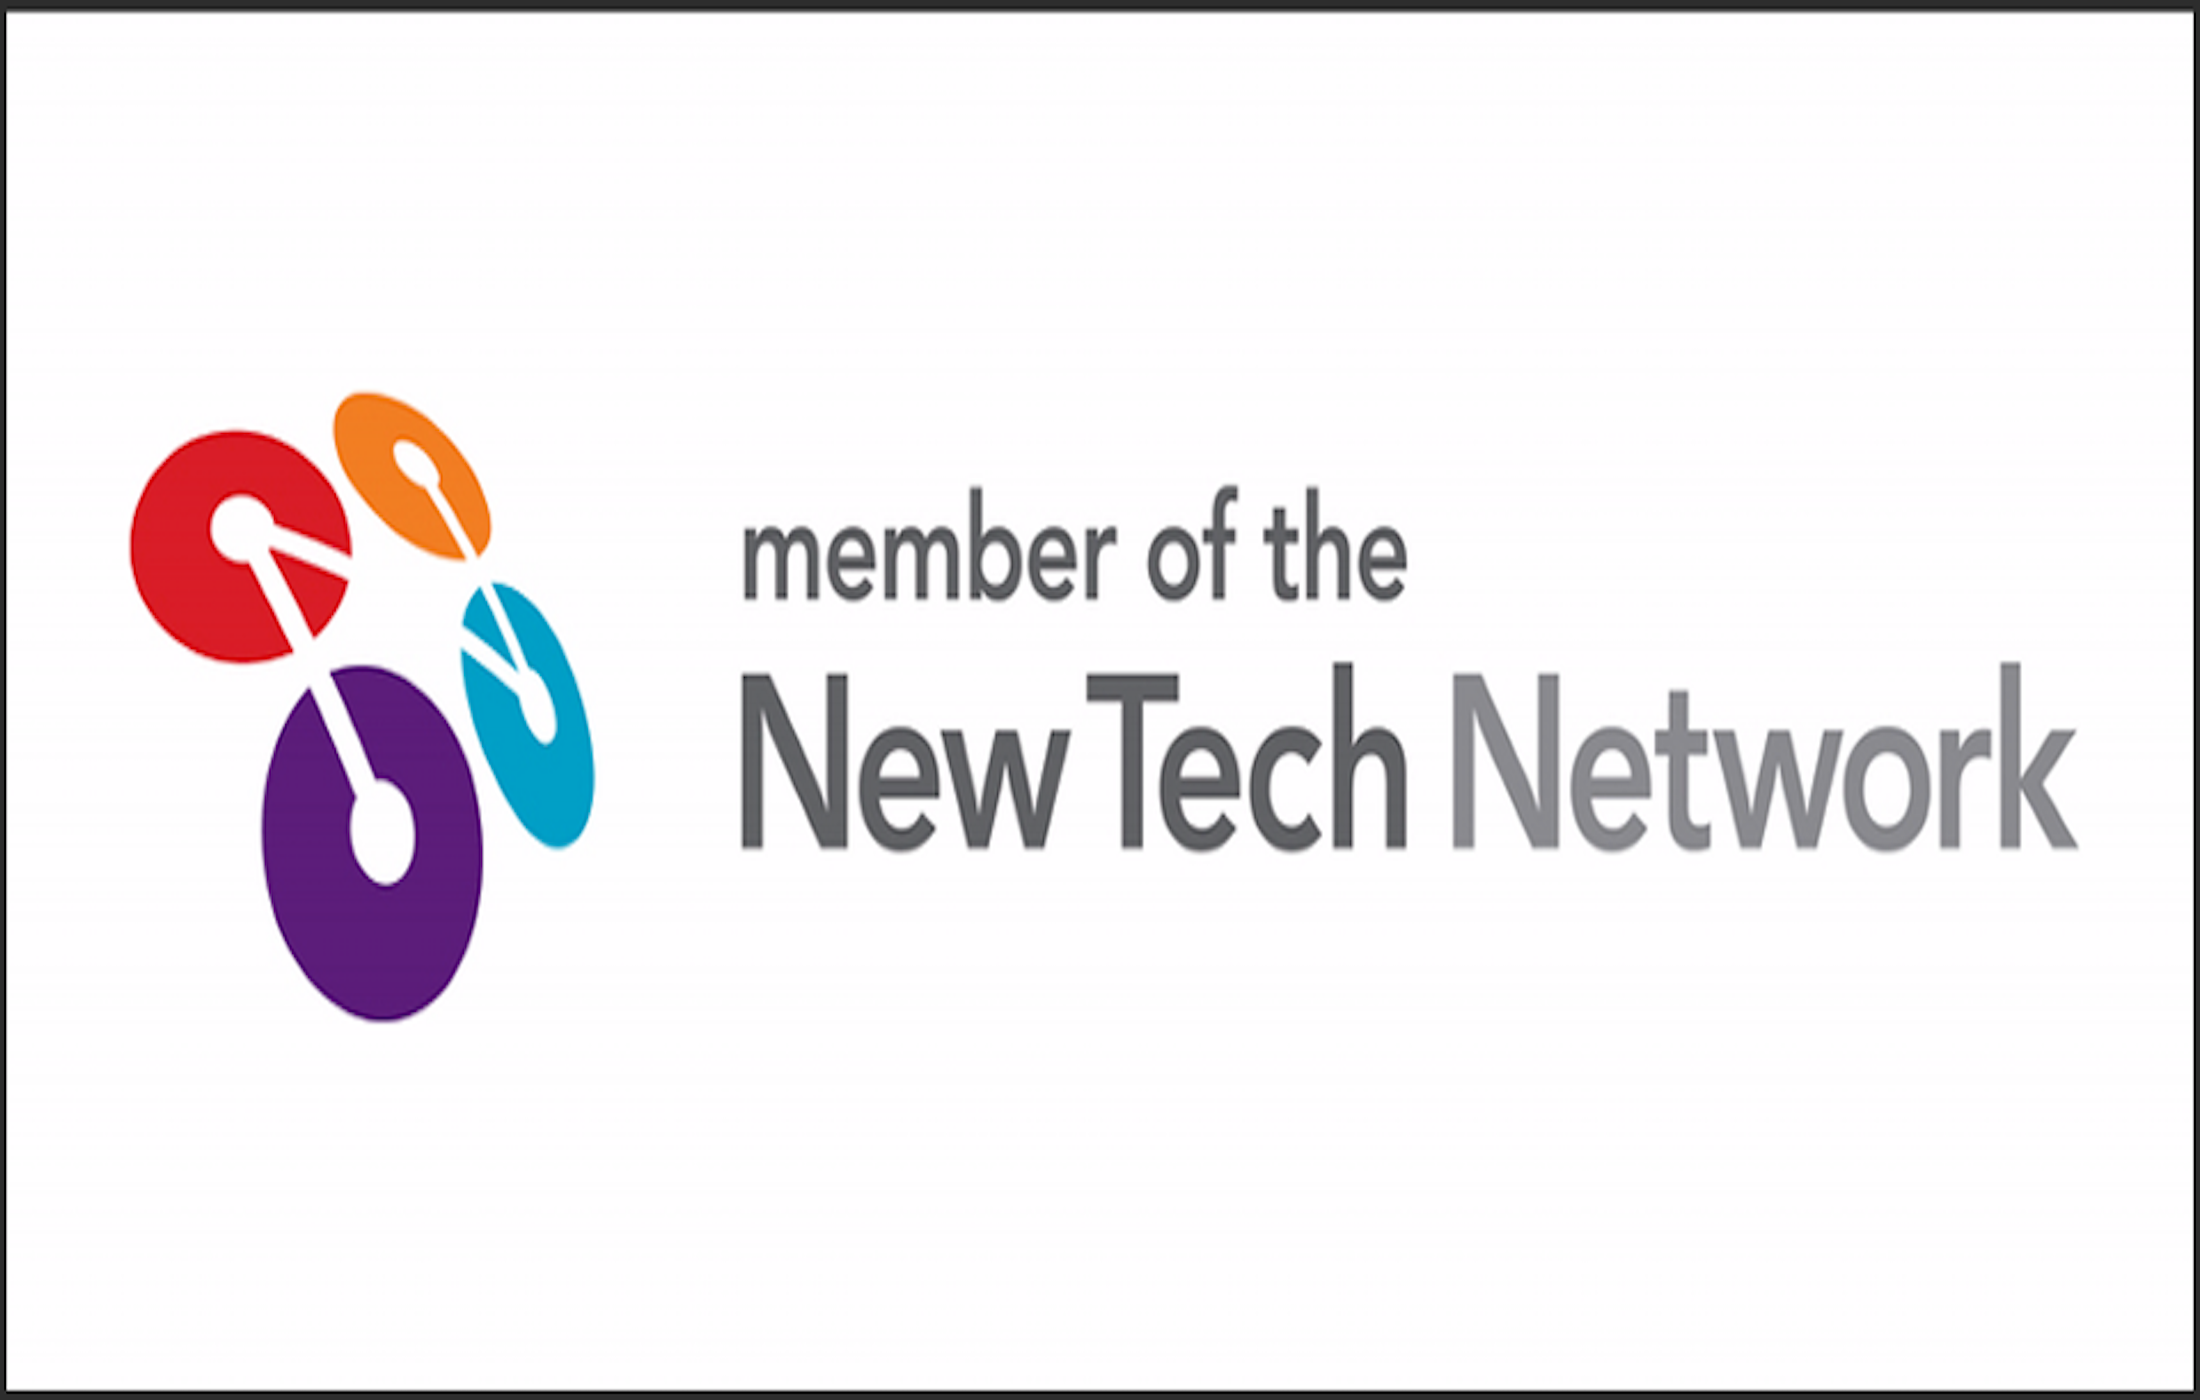 We are a member of the national New Tech Network.